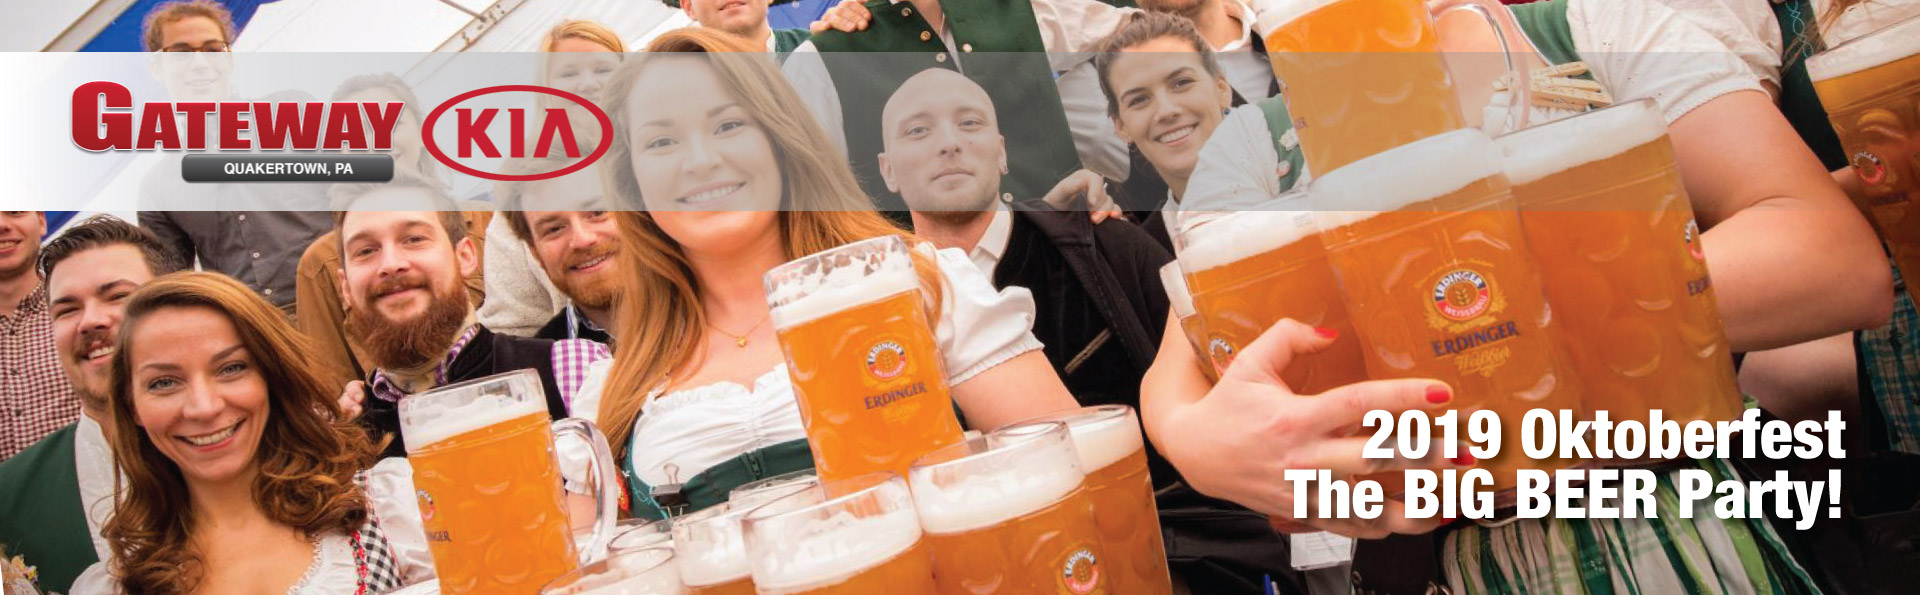 2019 Oktoberfest or Brewfest in Quakertown PA